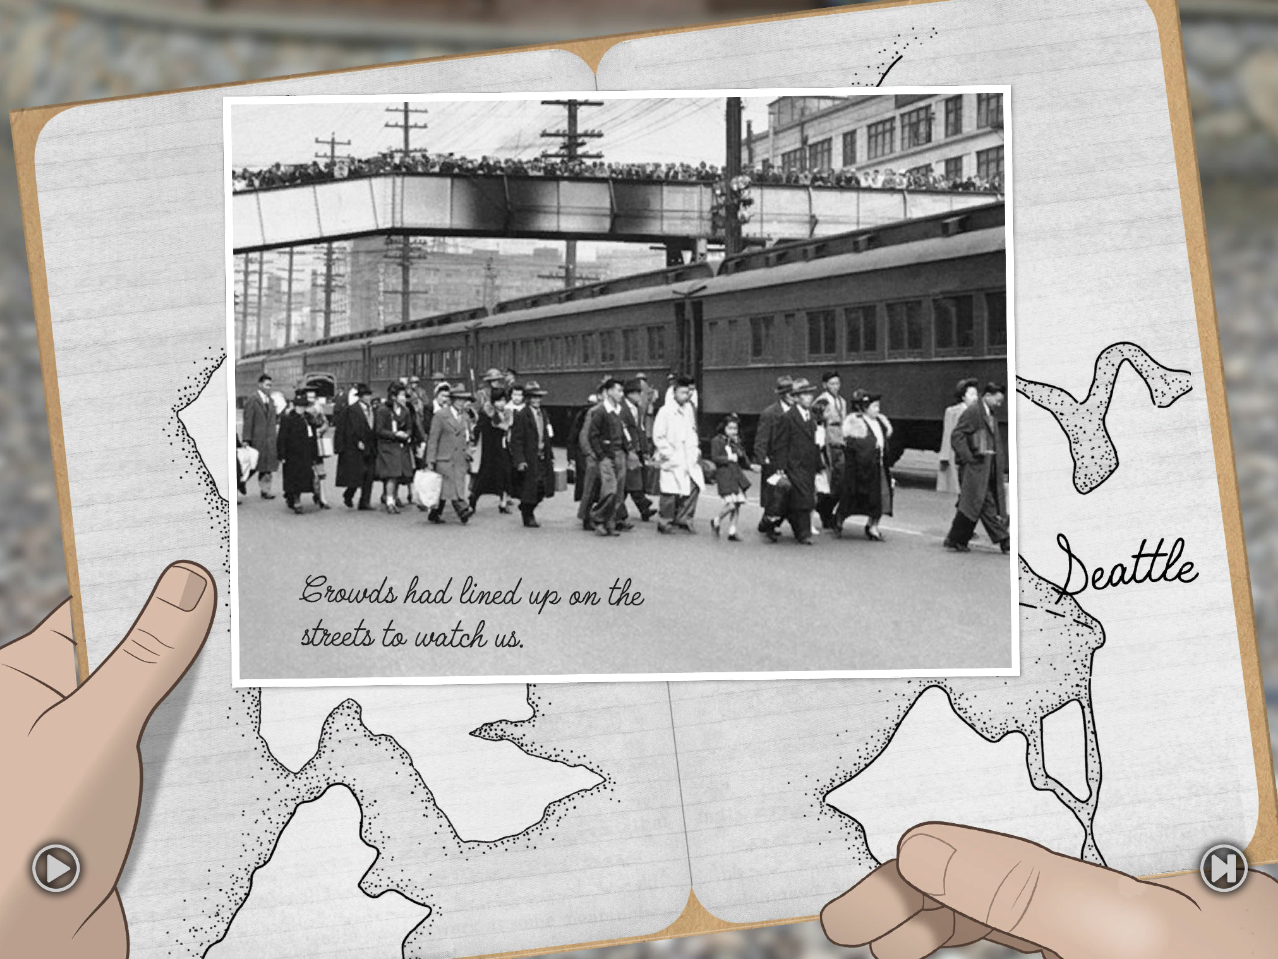 Mission 6 image. Japanese Americans forced to leave Bainbridge Island. Crowds lined up to watch.